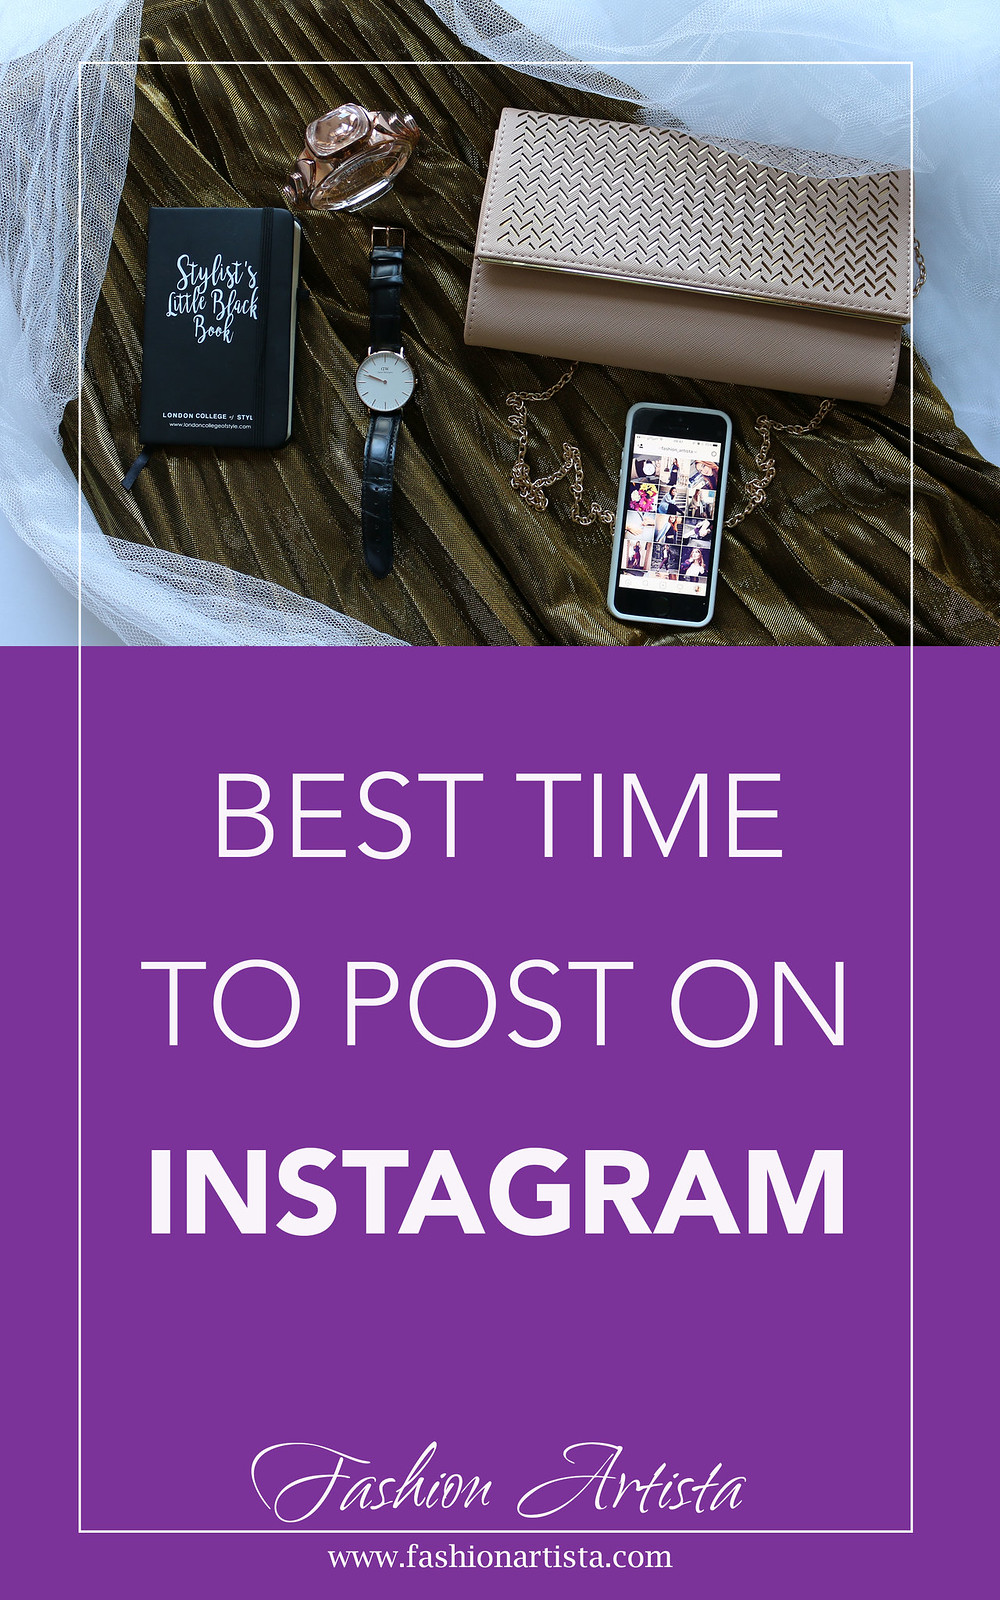 Best Time to Post On Instagram - www.fashionartista.com